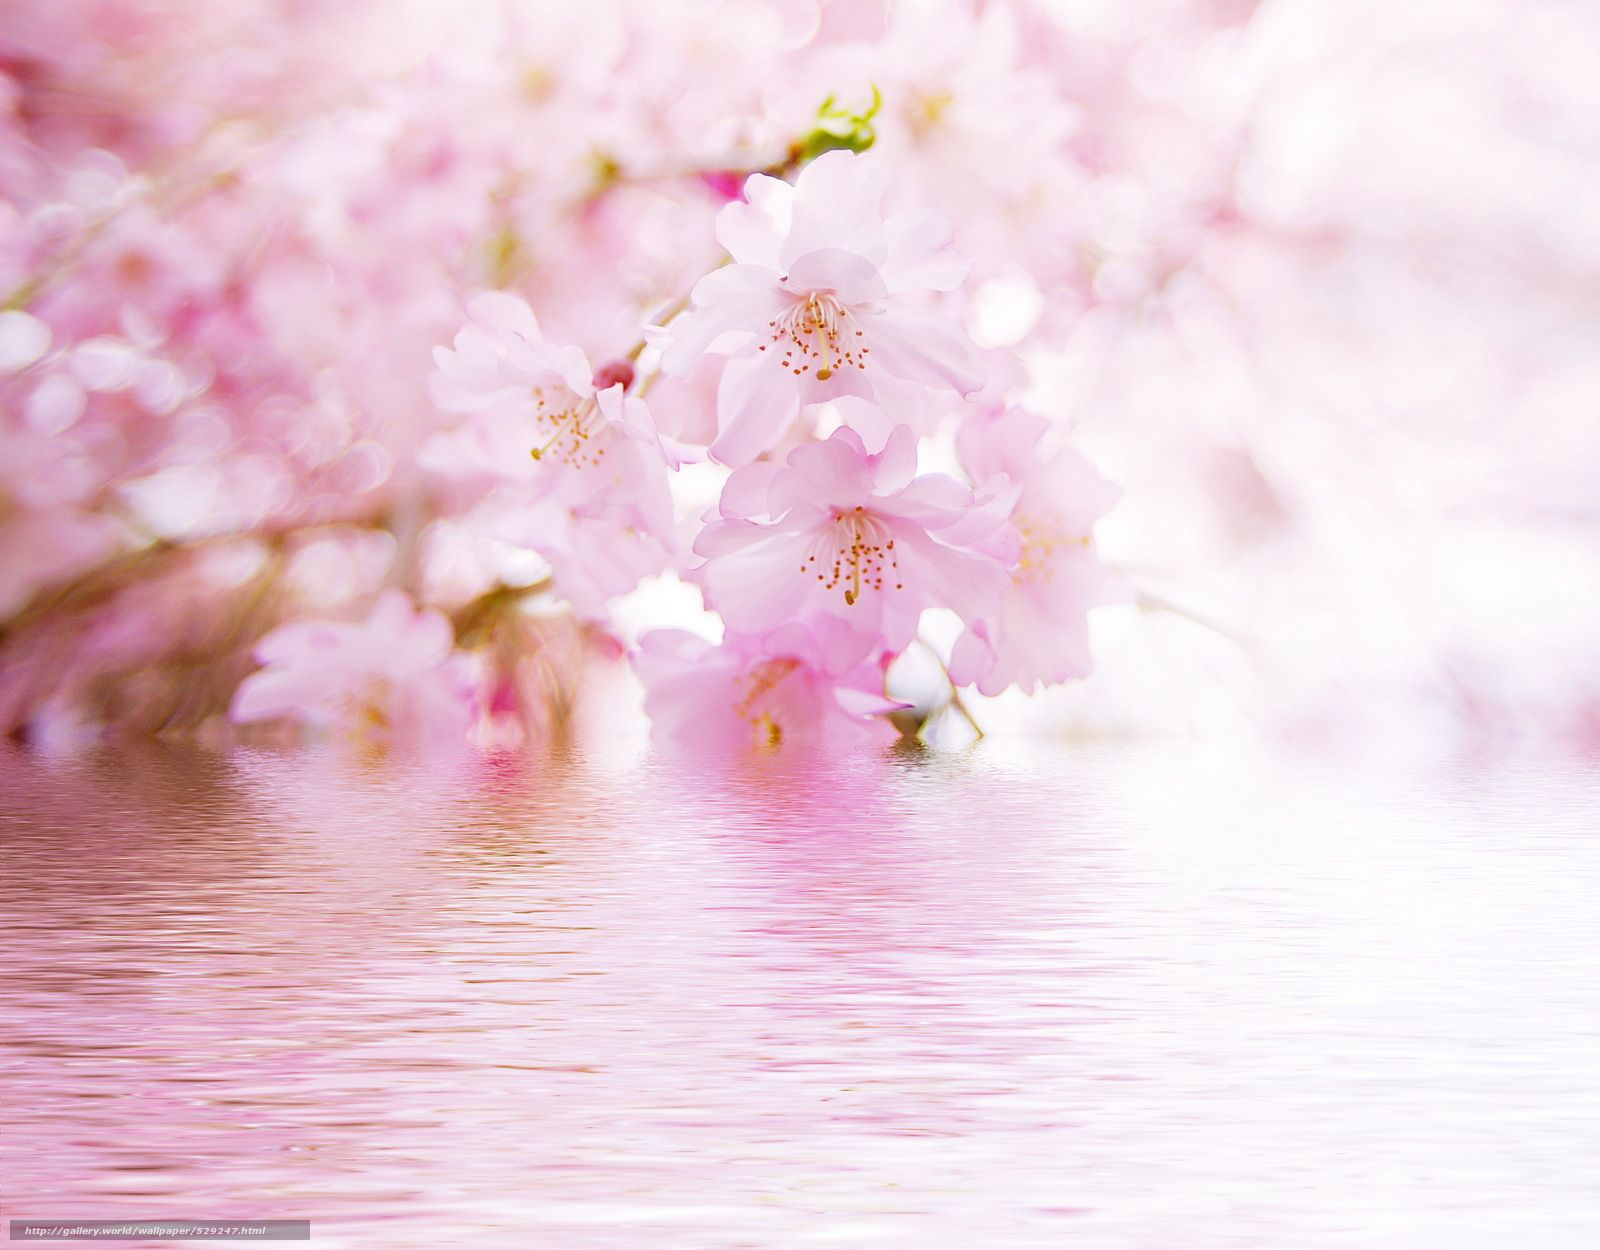 Download Wallpaper Blurring Reflection Water Flowers Free